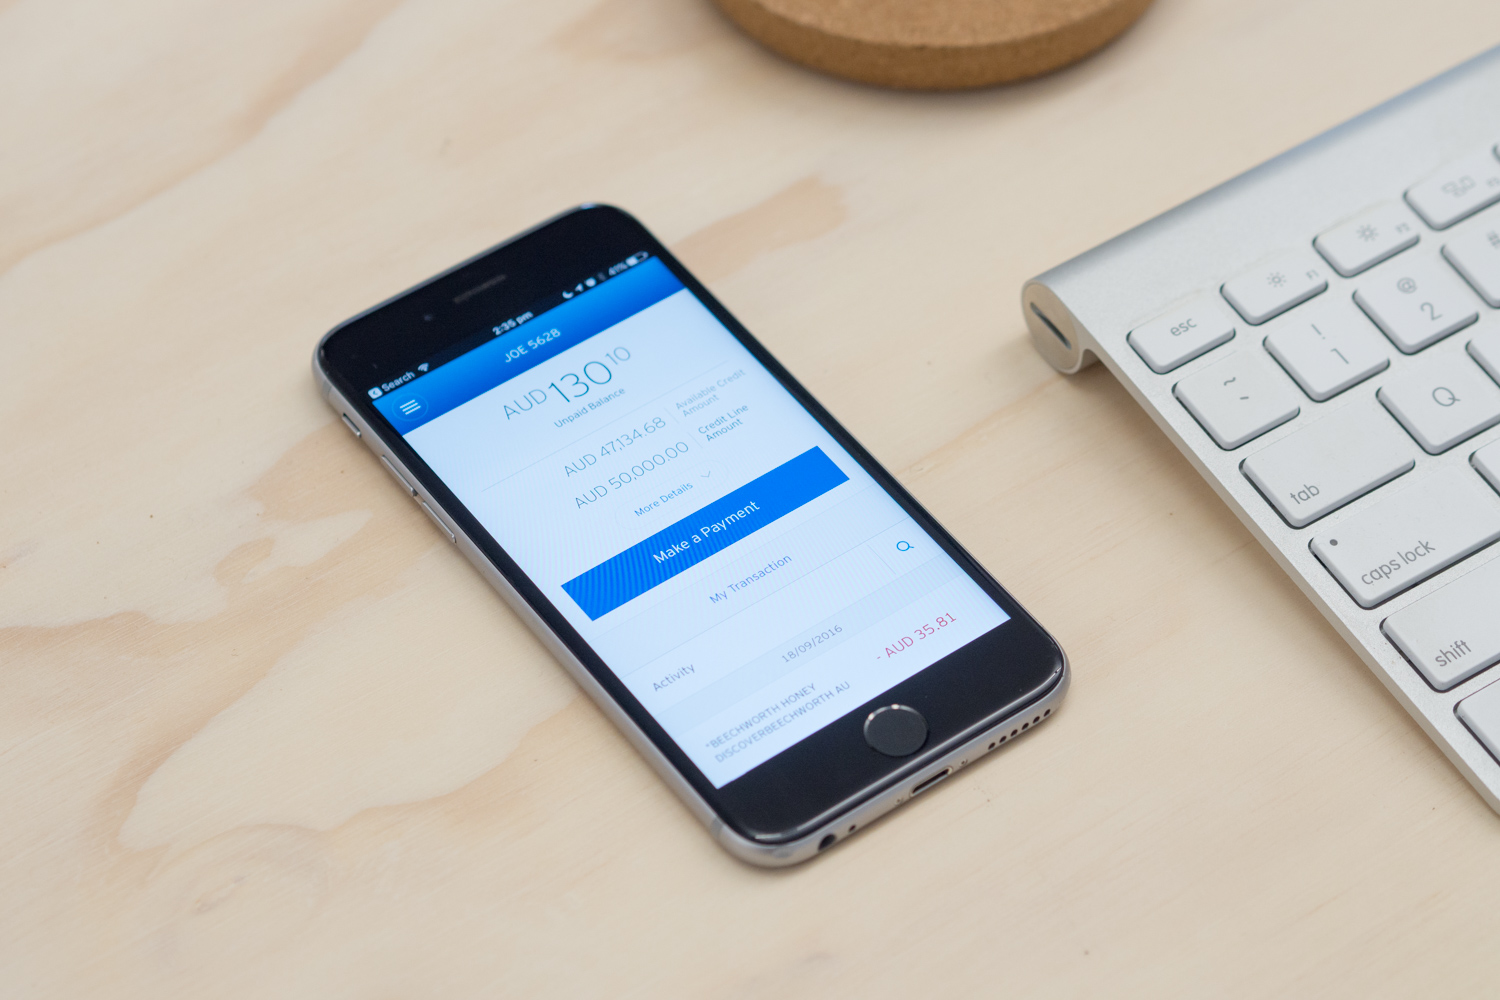 How To Make Saving Money Easier With The Citi Mobile App